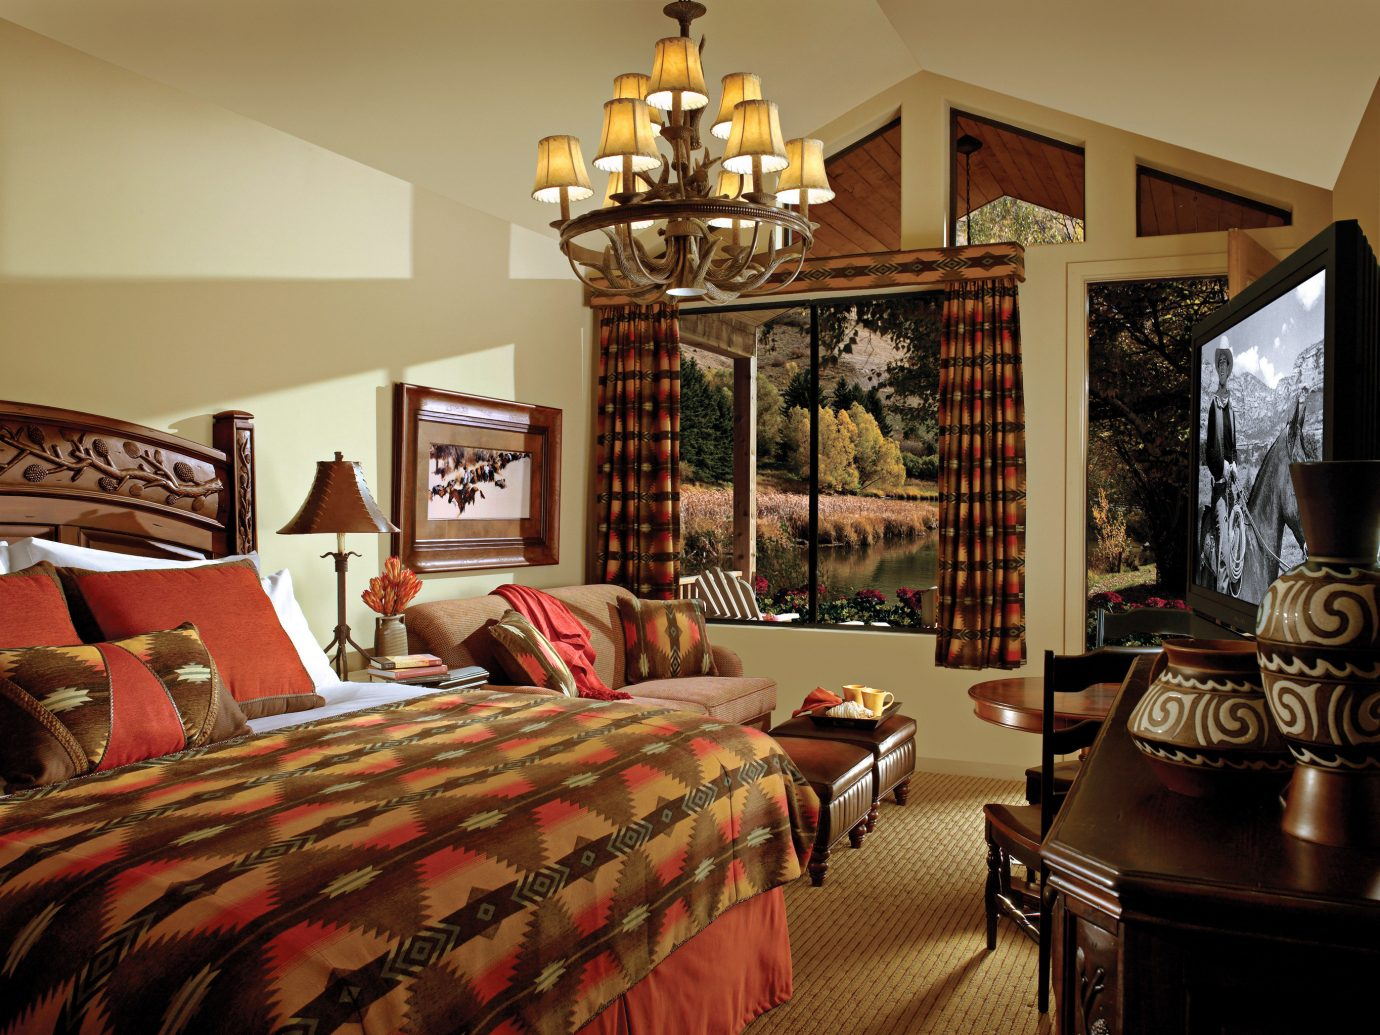 Bedroom Budget Country Family Hotels Lodge Rustic wall indoor room property ceiling estate living room home interior design cottage furniture dining room several